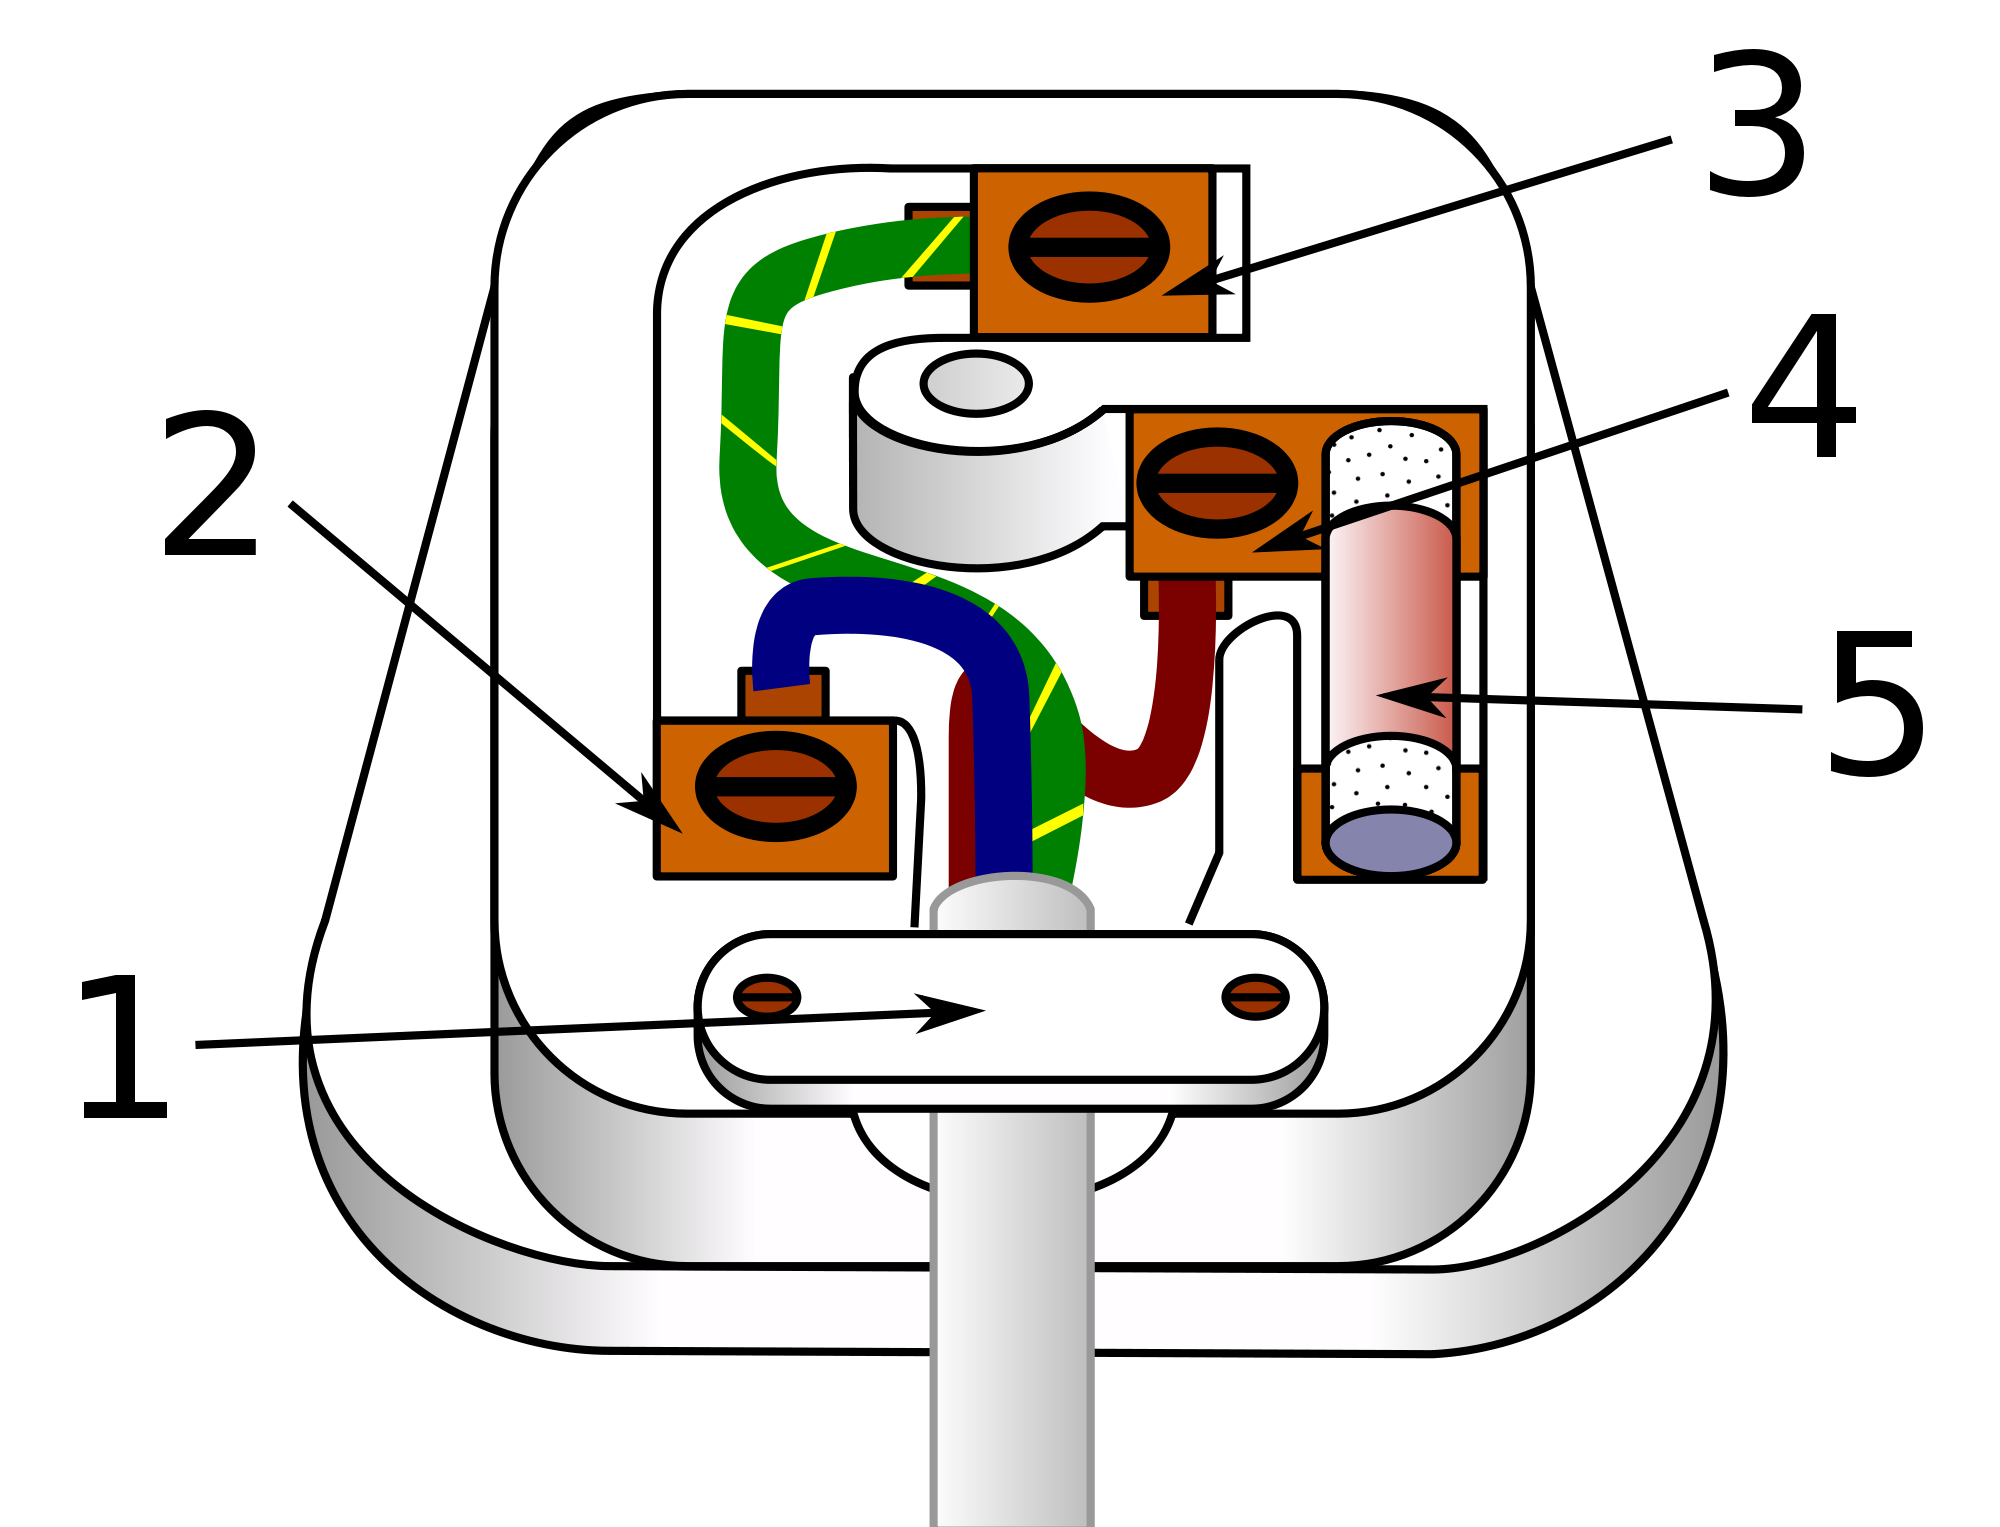 Basic Electrical Plug Wiring Wire Center Diagrams 110 Volt How To A 3 Pin Mmk Electricians Dublin Rh Mmkelectricians Ie Receptacle Diagram